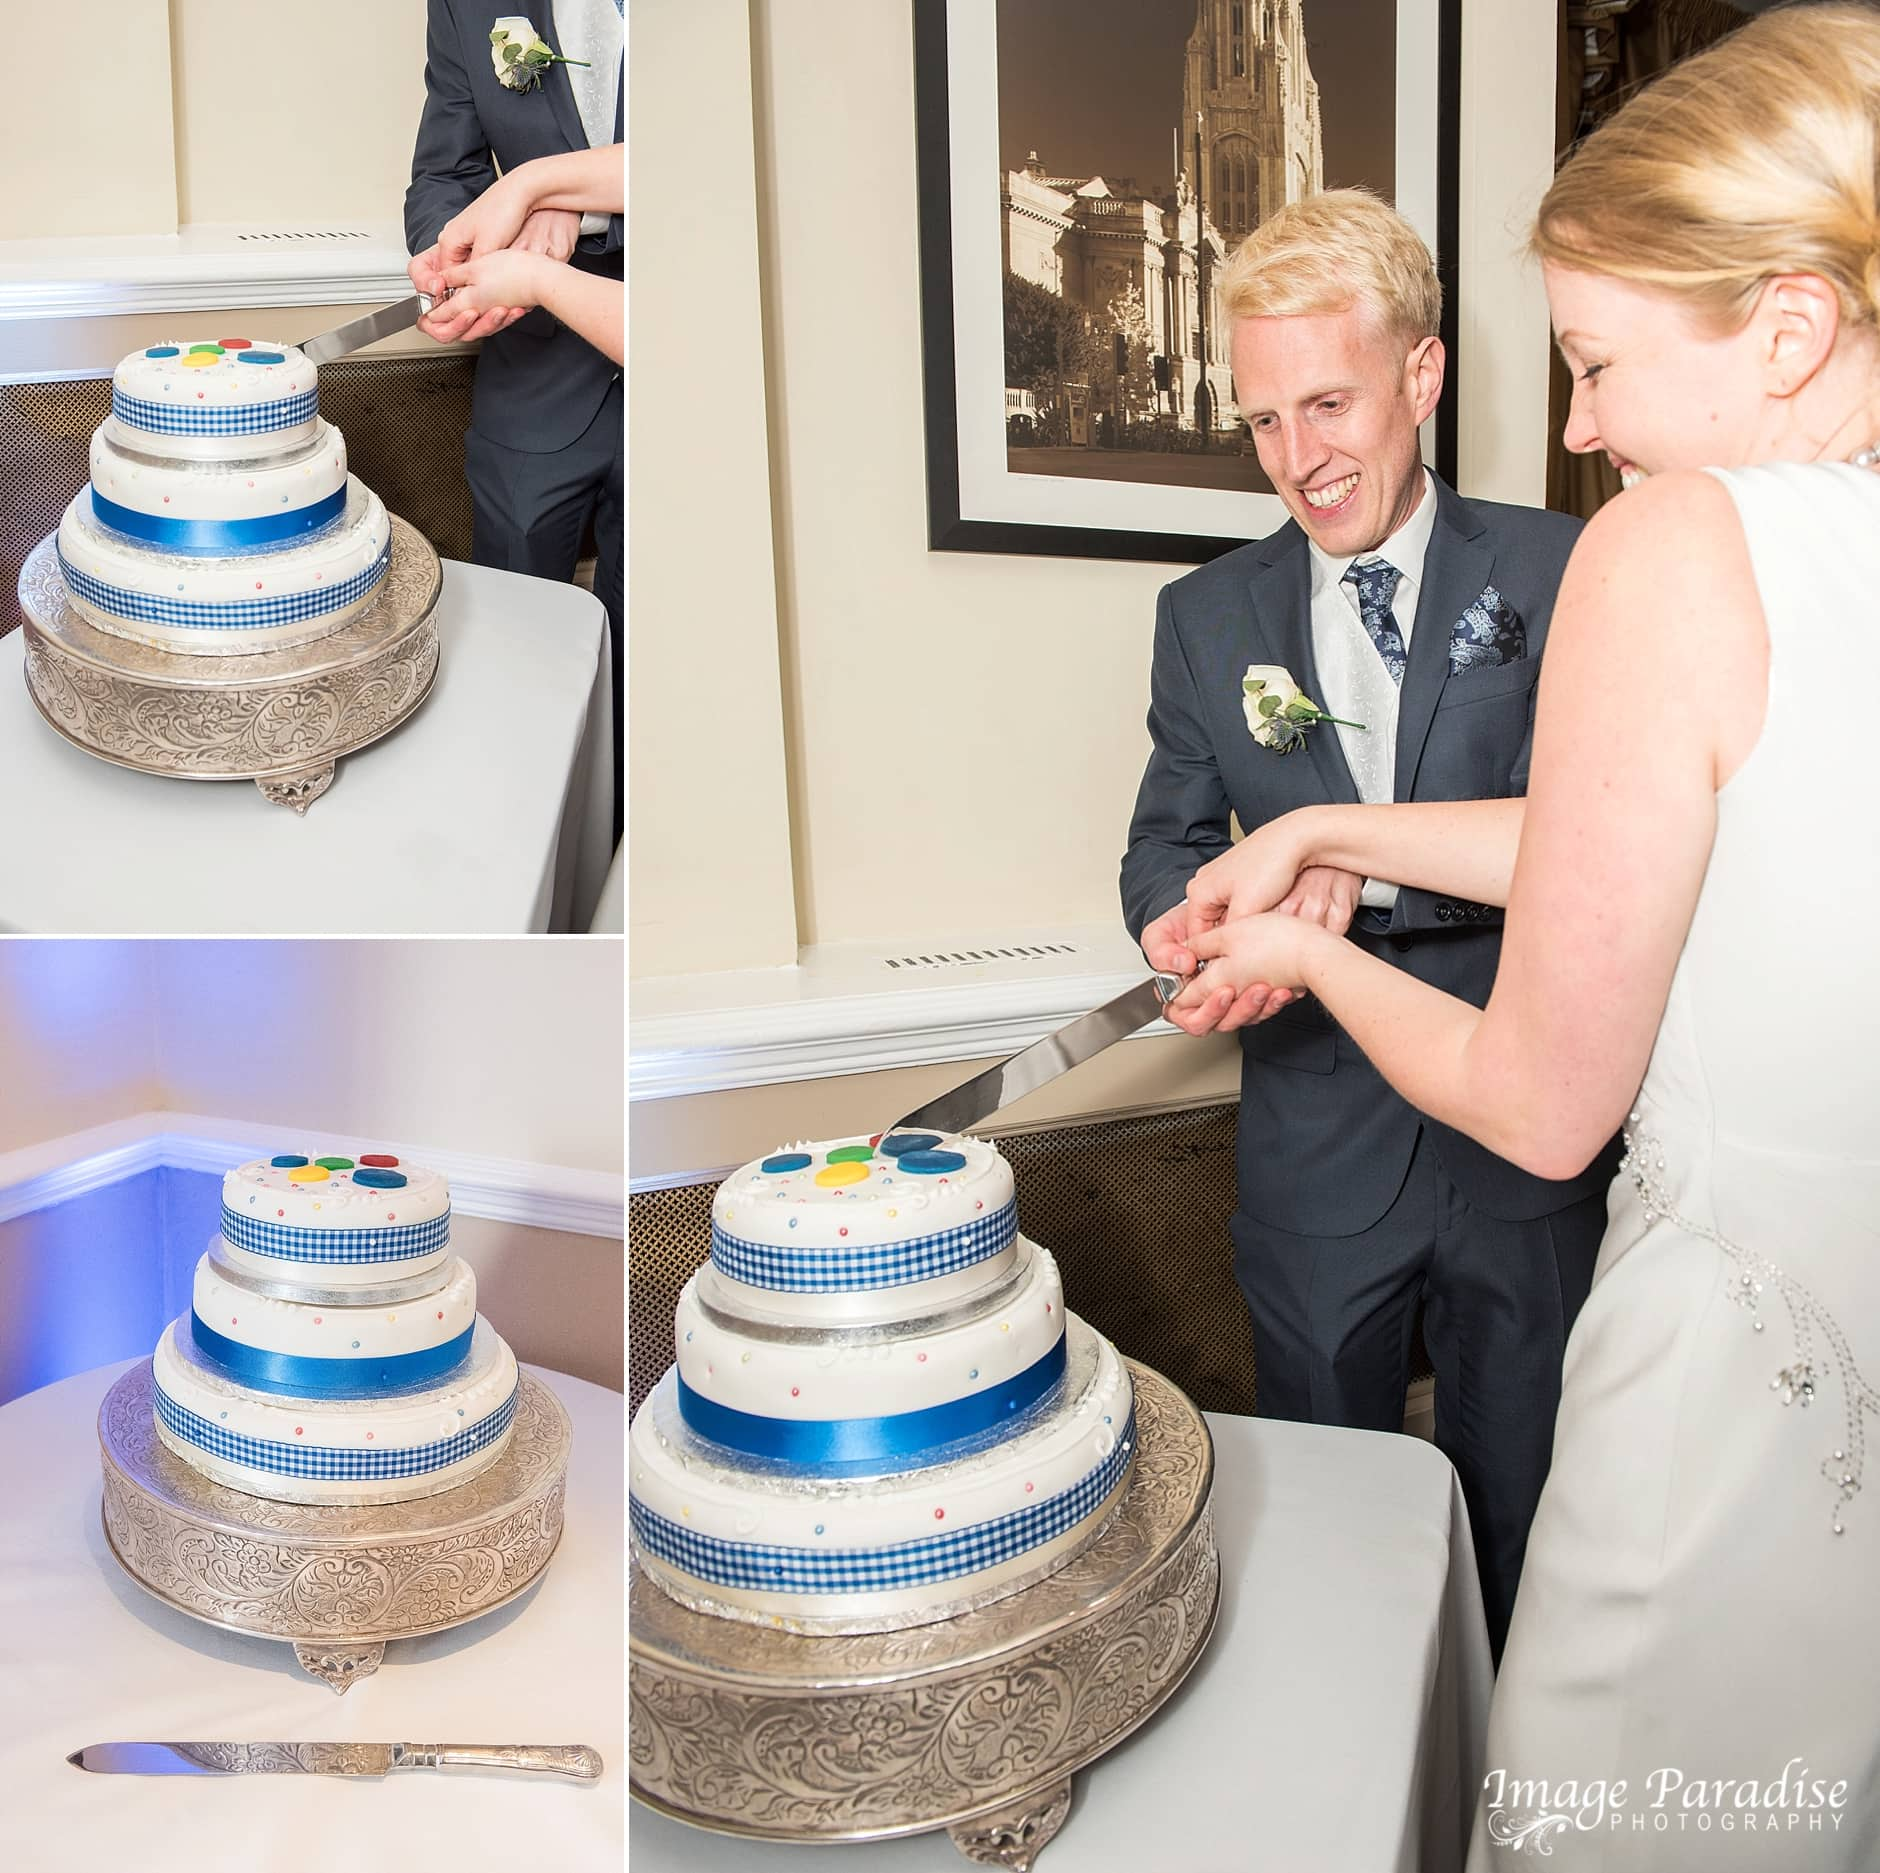 Cake cutting at wedding at The Avon Gorge Hotel